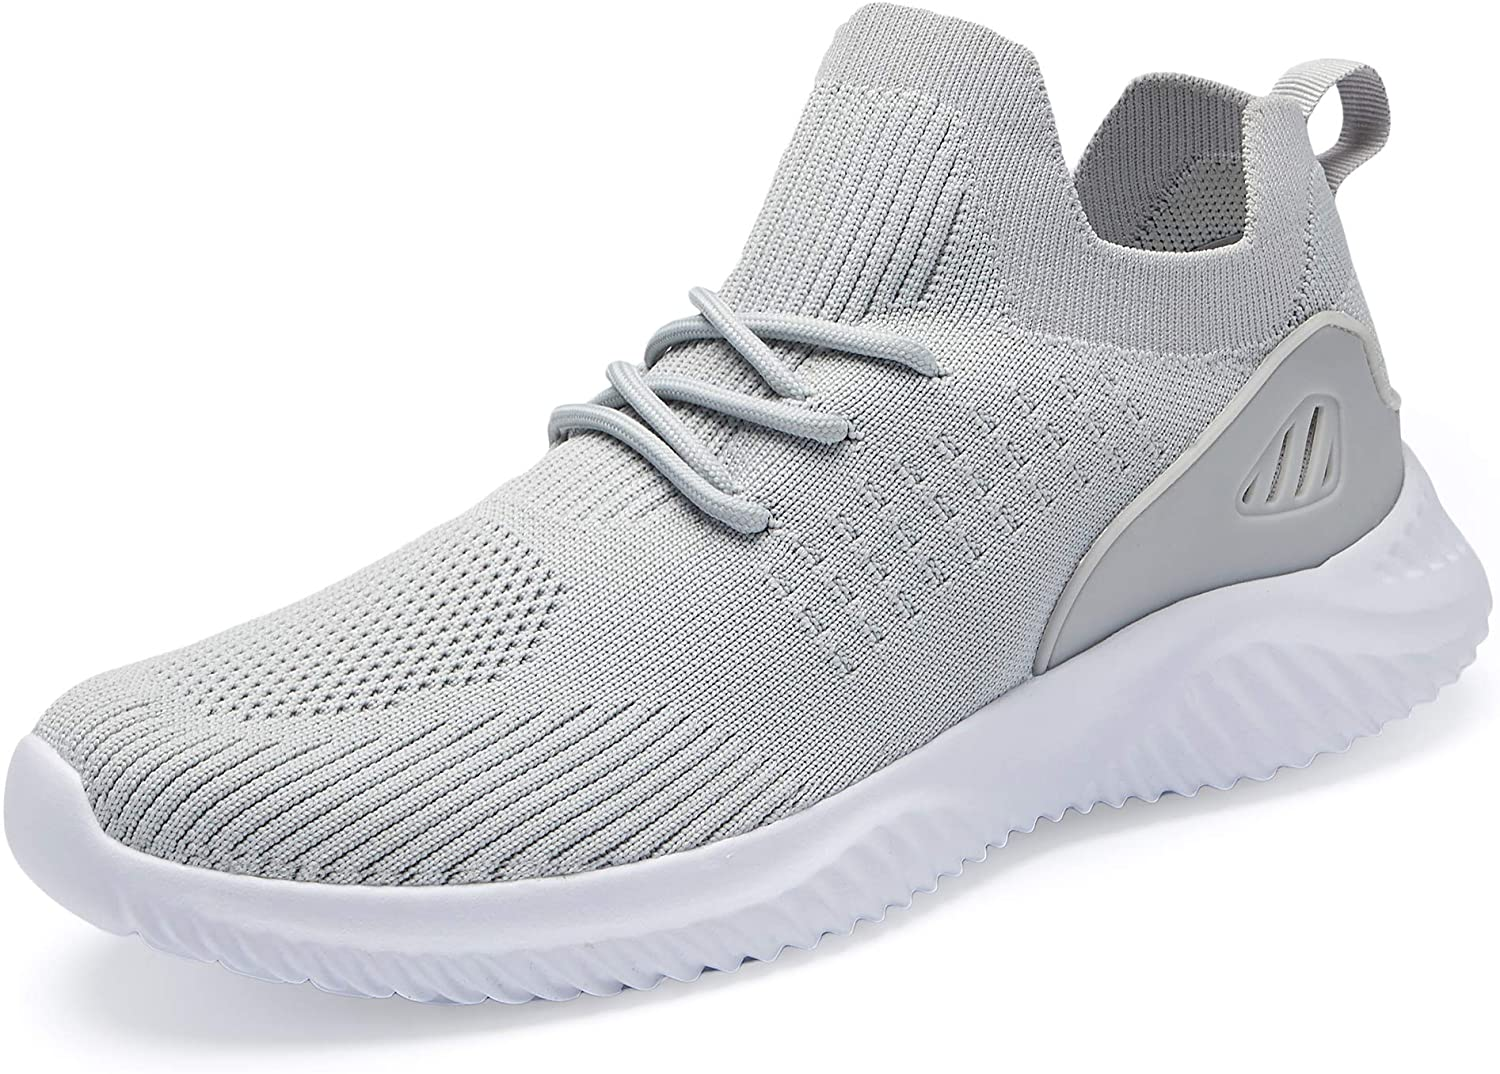 YPK Mens Fashion Sneakers Running Walking Shoes Gym Sport Trainers